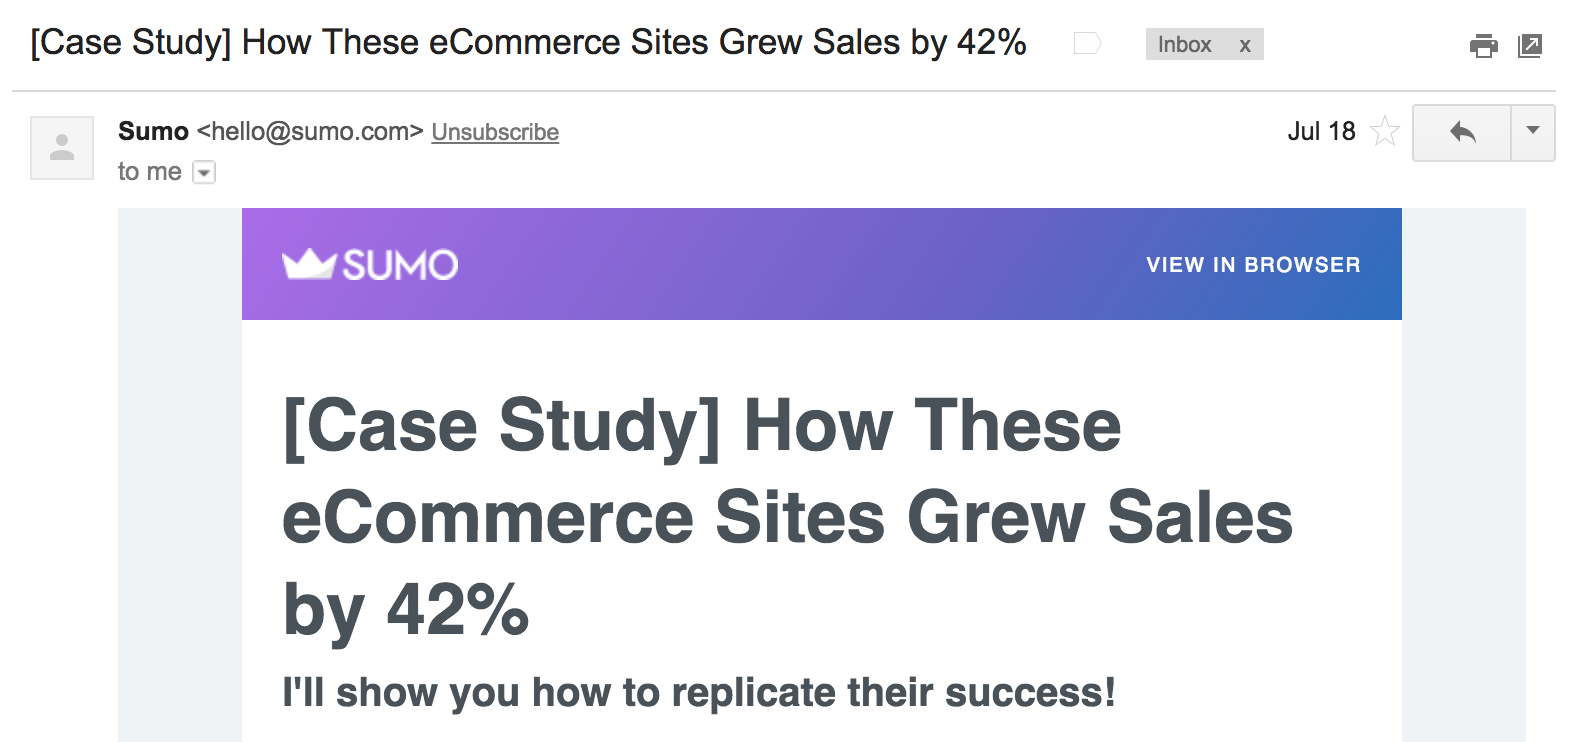 Best Email Subject Lines: Screenshot of case study email by Sumo